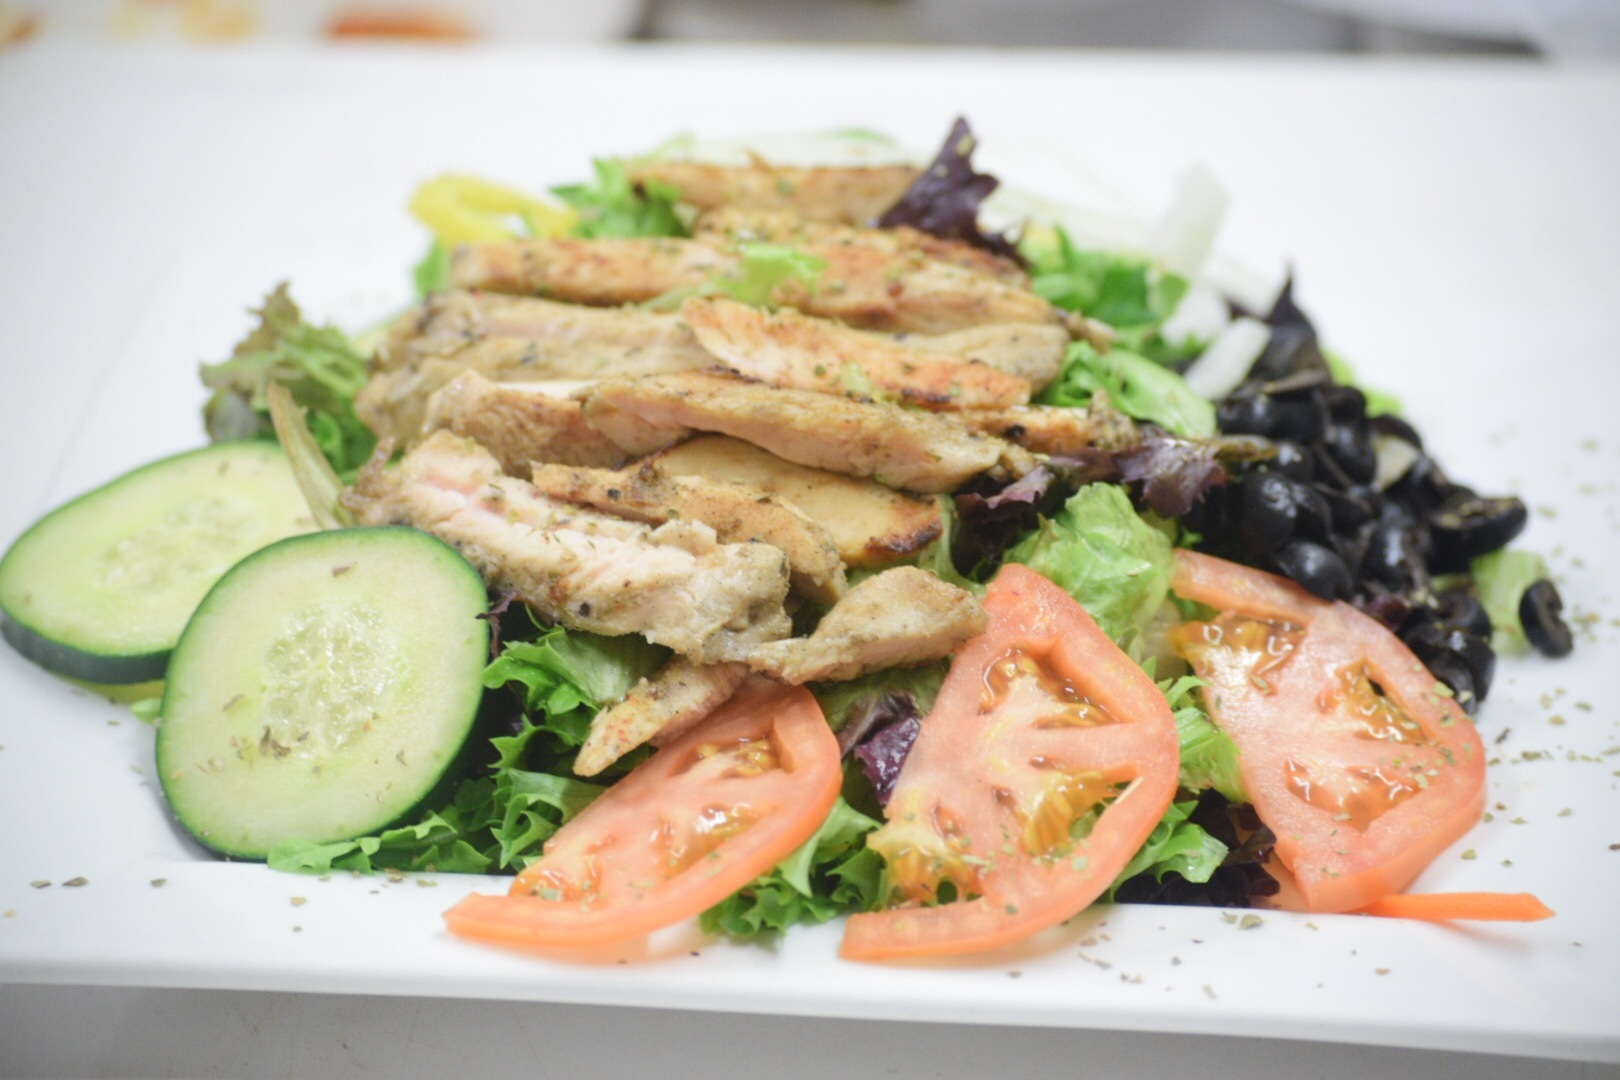 Grilled Chicken Salad, Luce